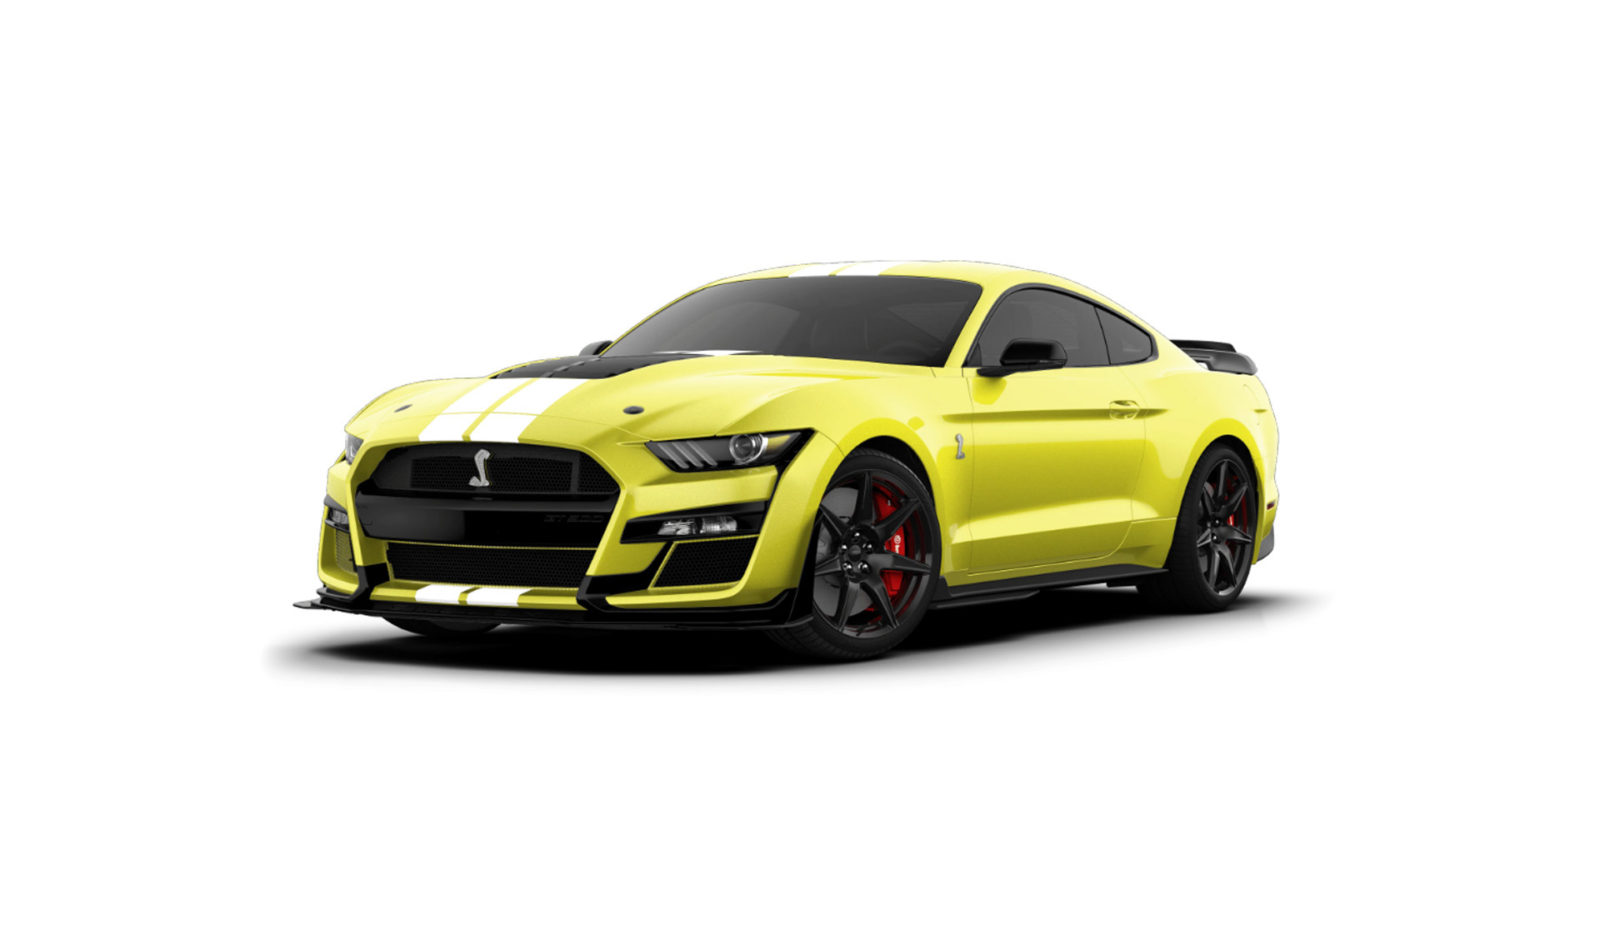 preview:-2021-ford-mustang-shelby-gt500-offered-with-carbon-pack,-new-colors